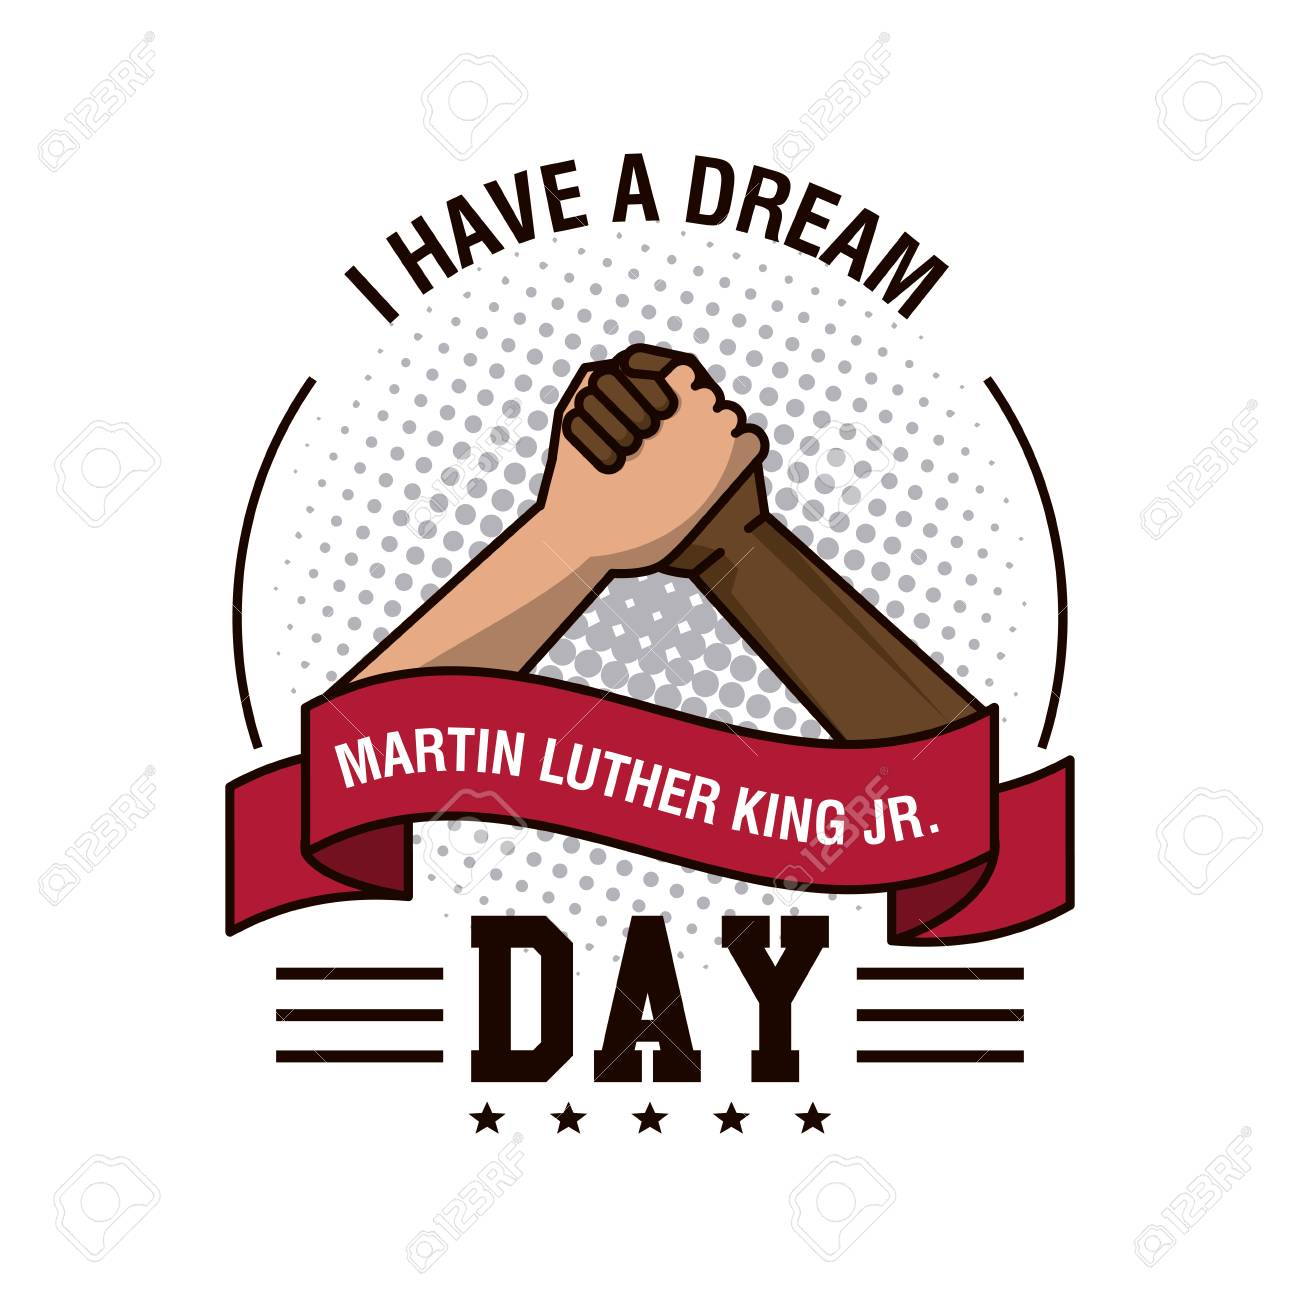 martin luther clipart at getdrawings com free for personal use rh getdrawings com martin luther king clipart free martin luther king jr clipart